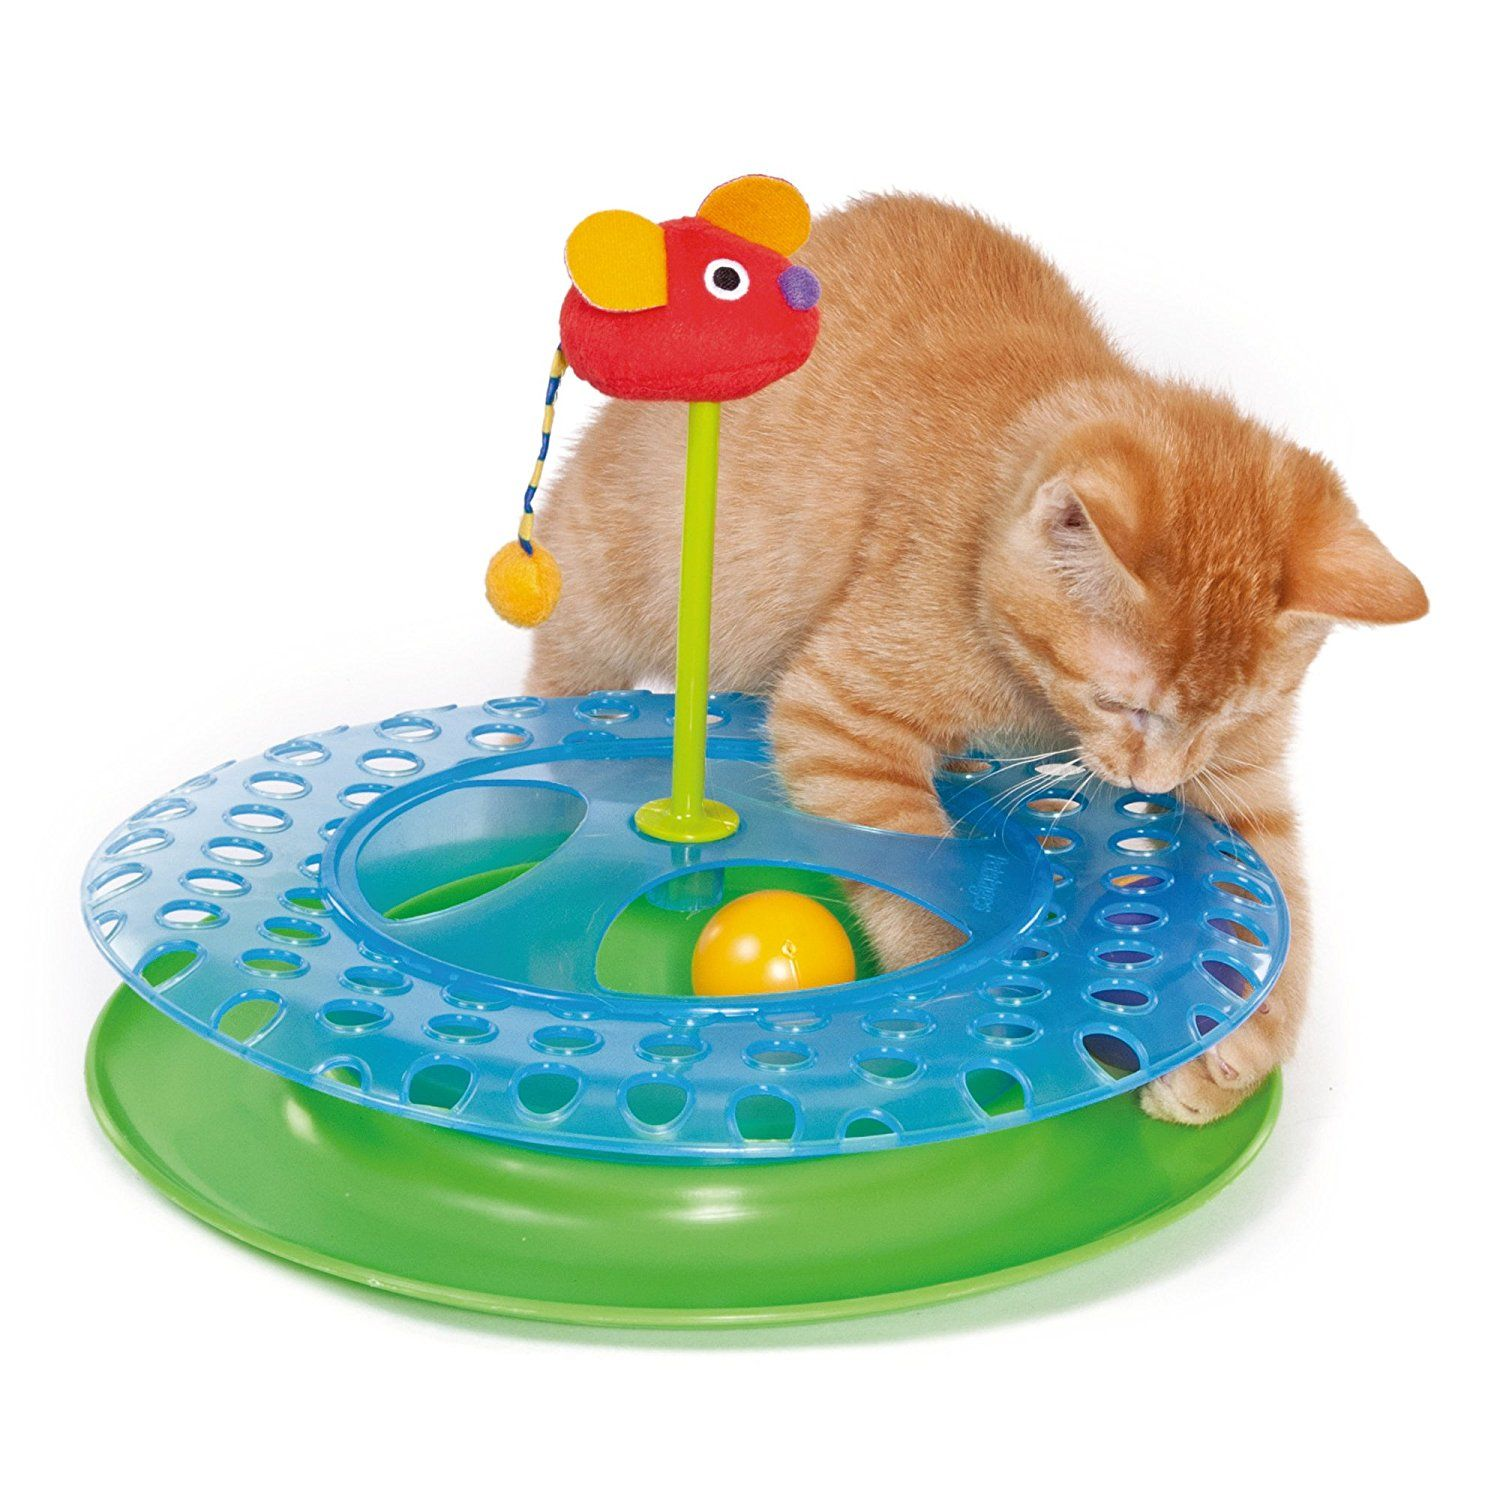 Bluehost Com Cat Playing Cat Toys Cat Lover Gifts